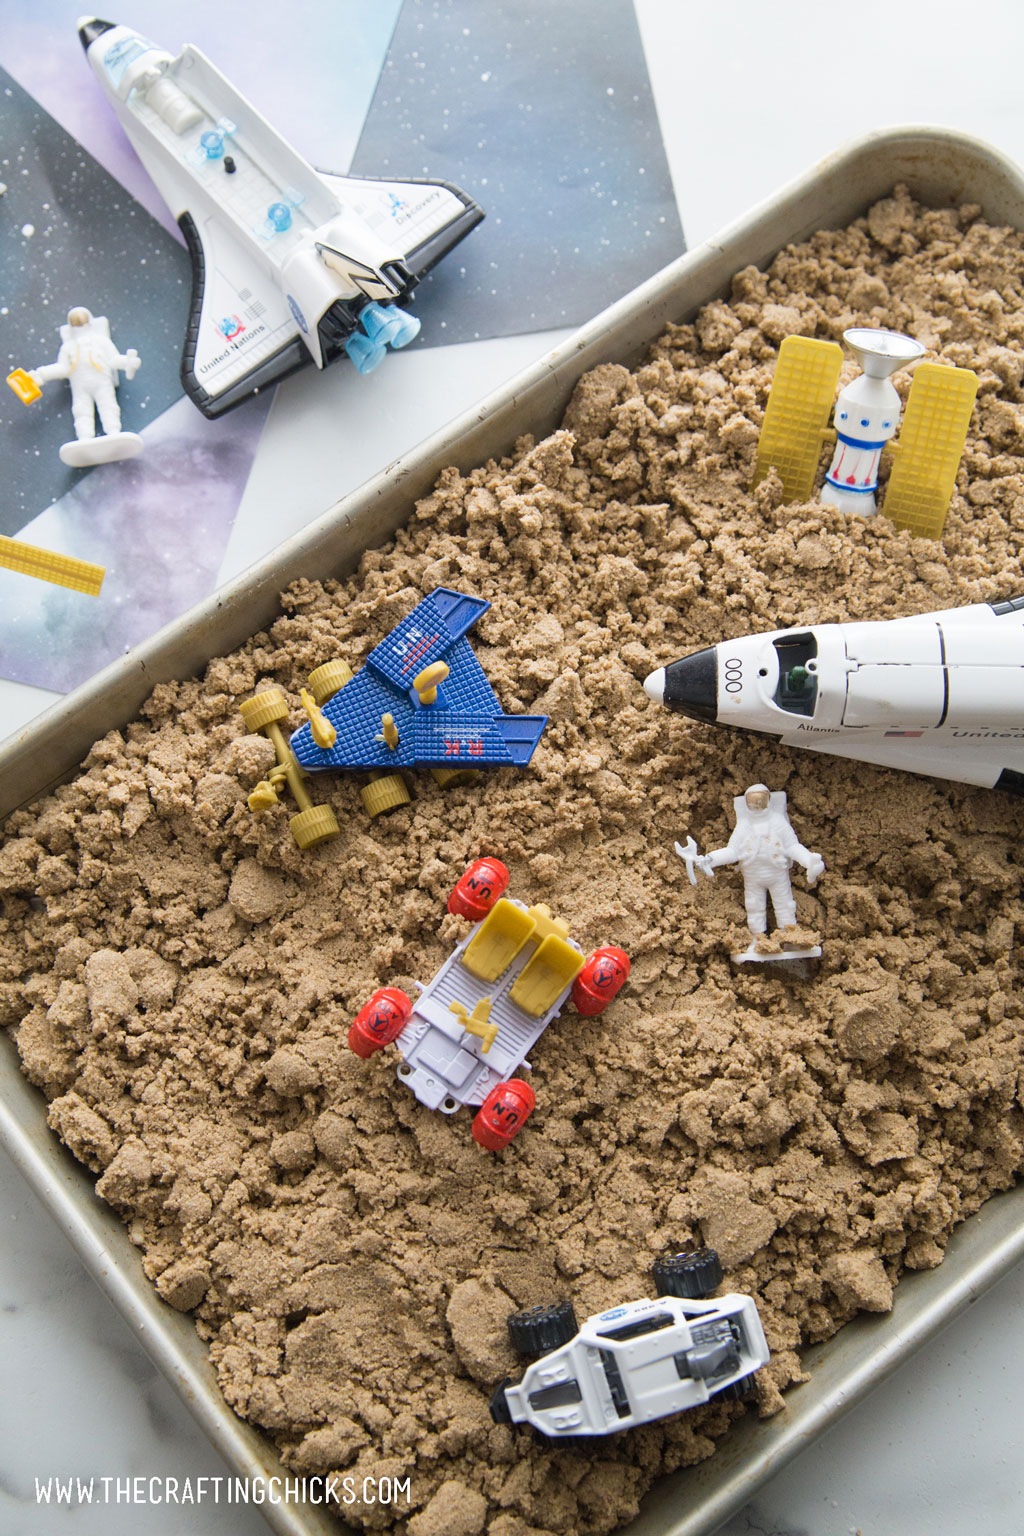 Moon sand with rocket and astronaut as play toys.